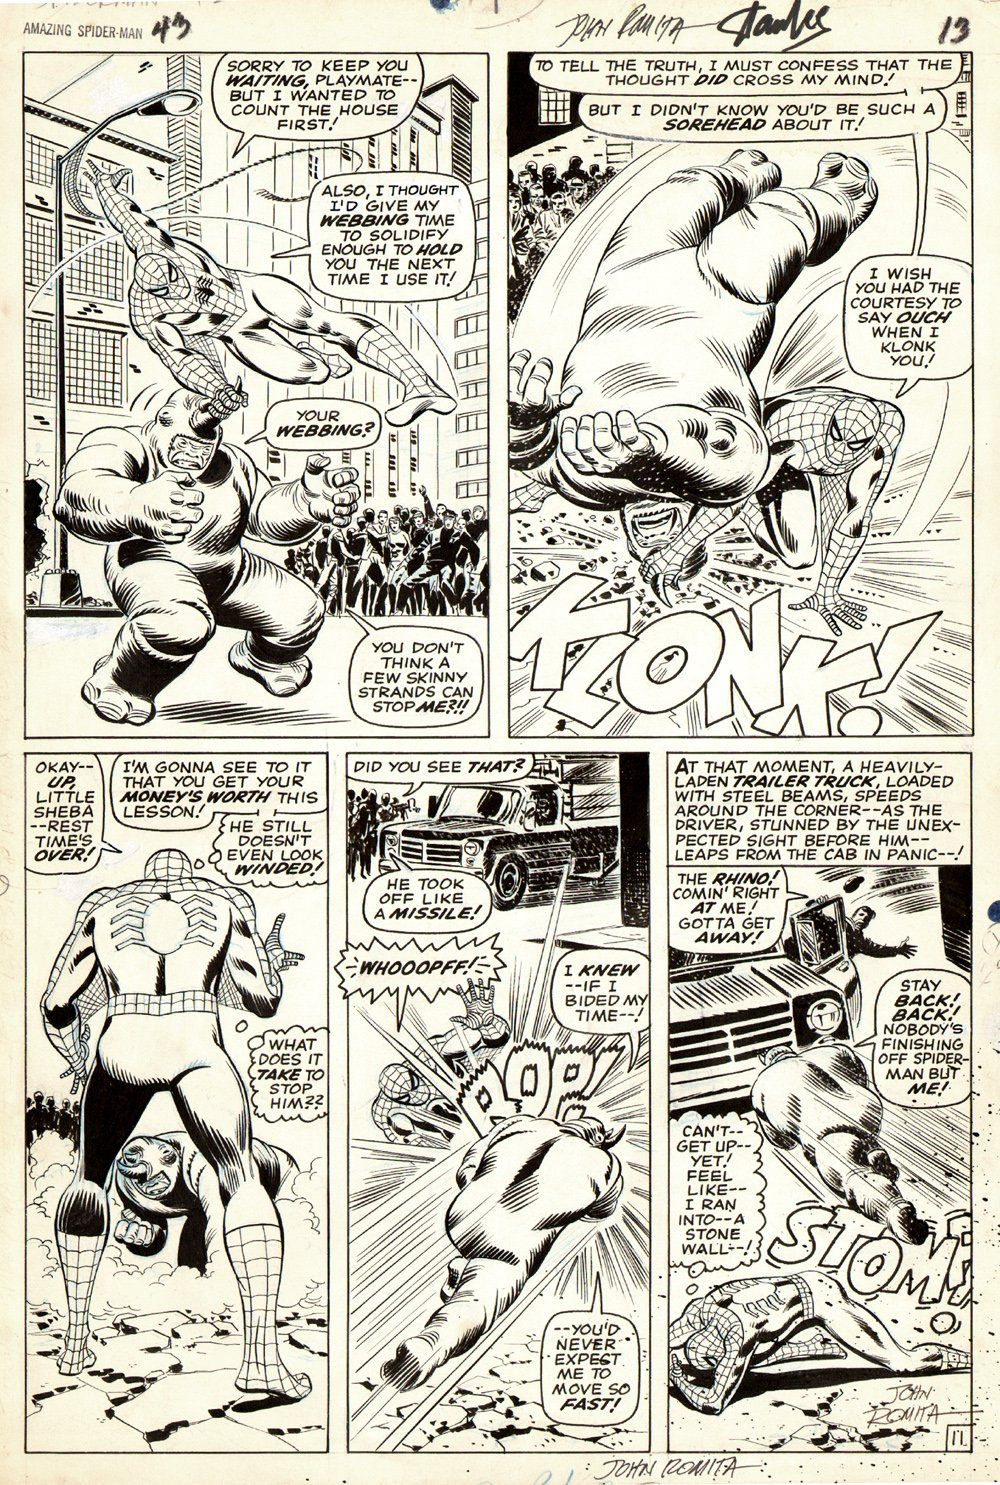 Amazing Spider-Man #43 p 11 (Large Art) SOLD SOLD SOLD!